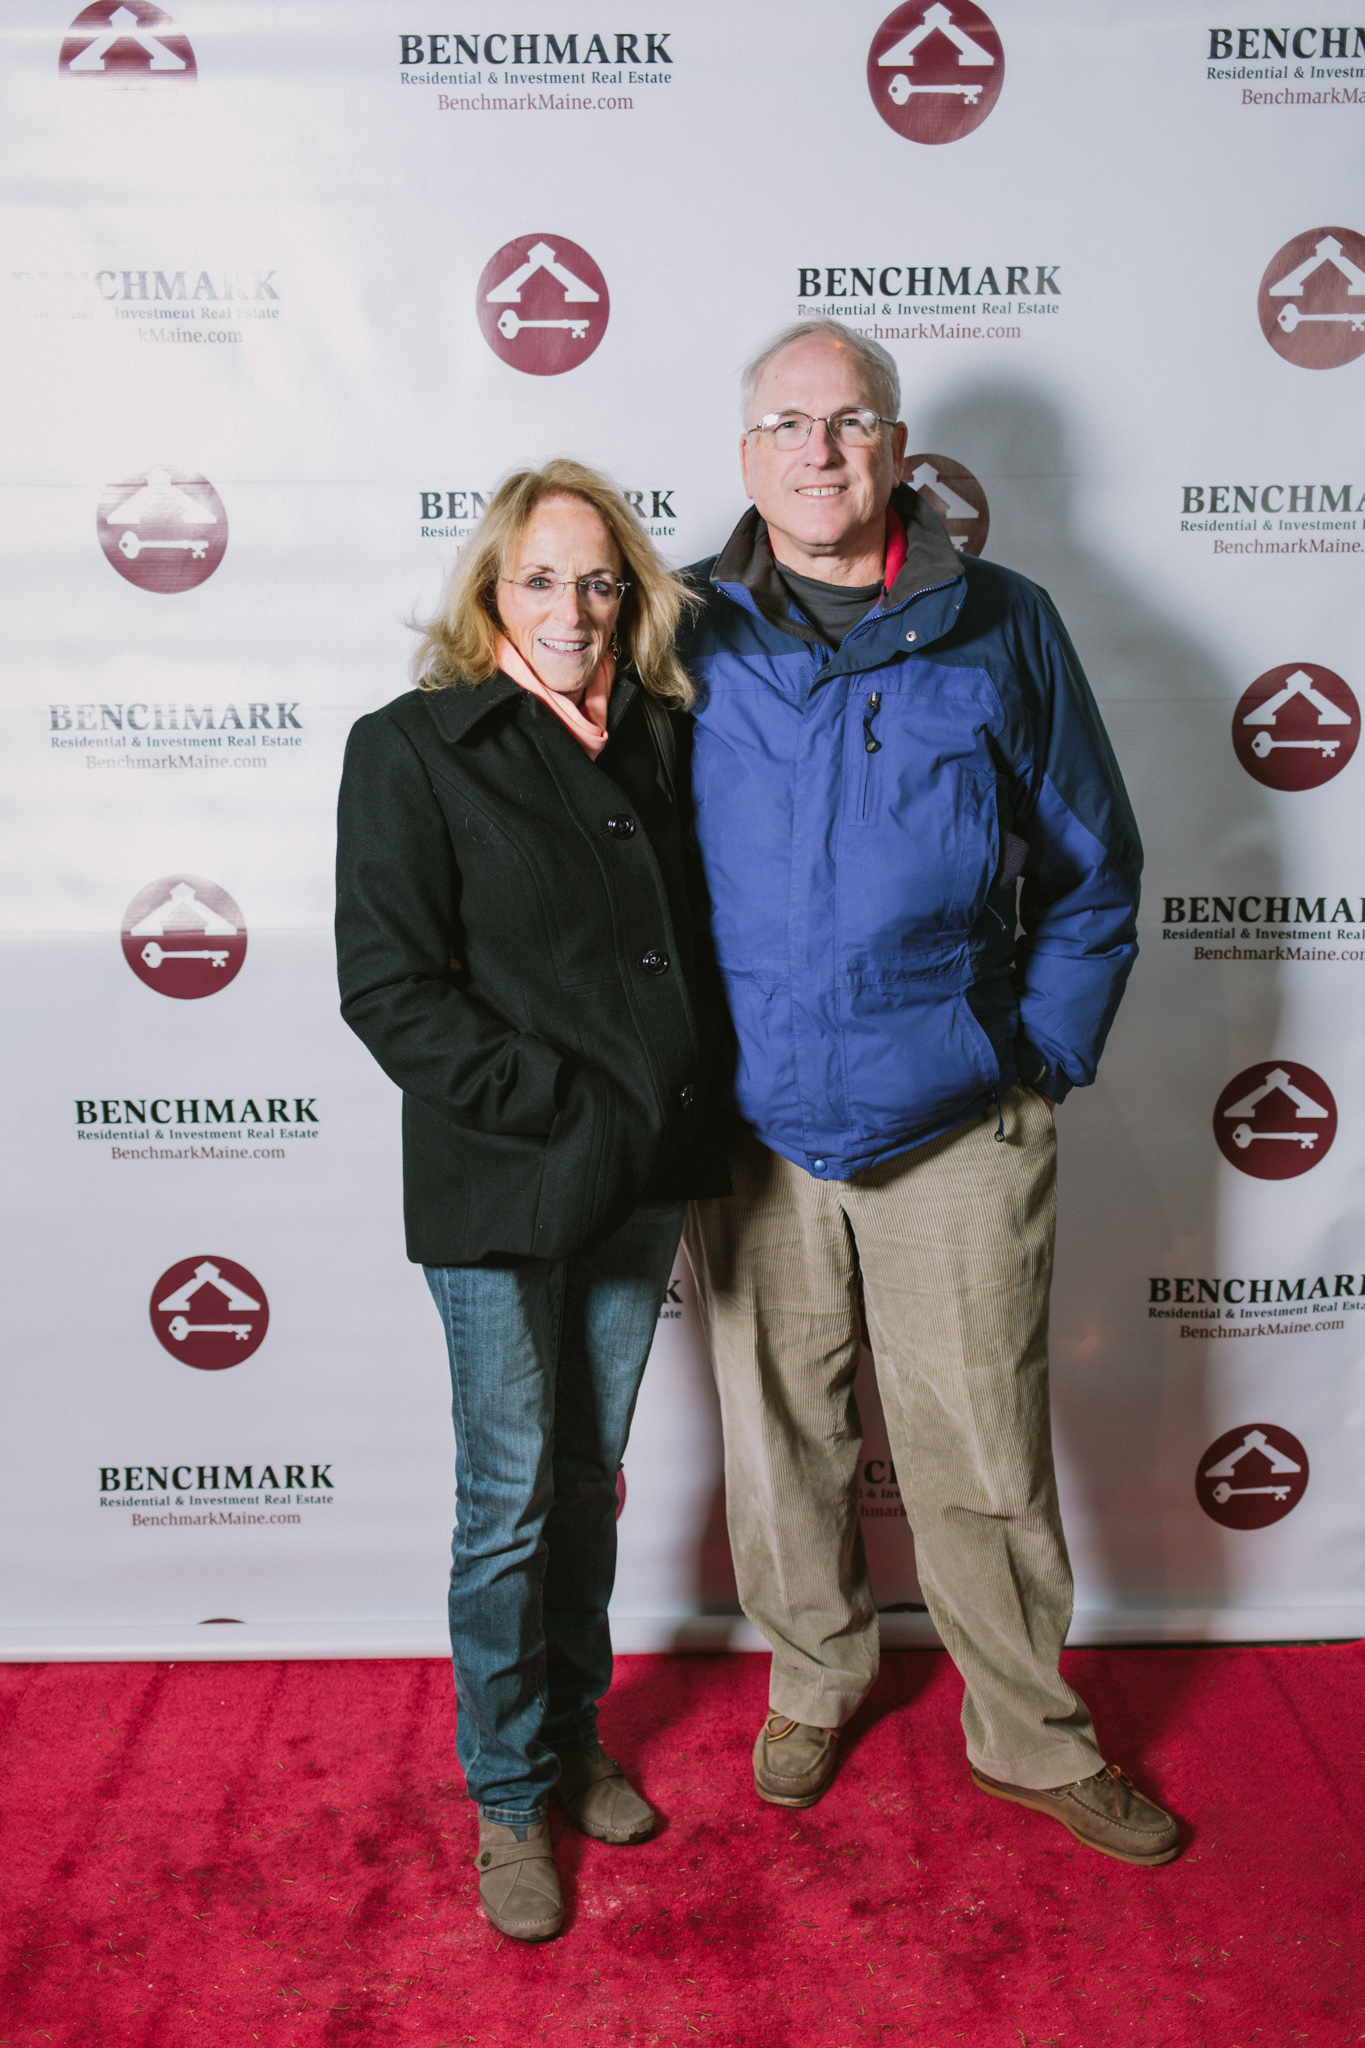 Benchmark_Holiday_Party_SR-041.jpg